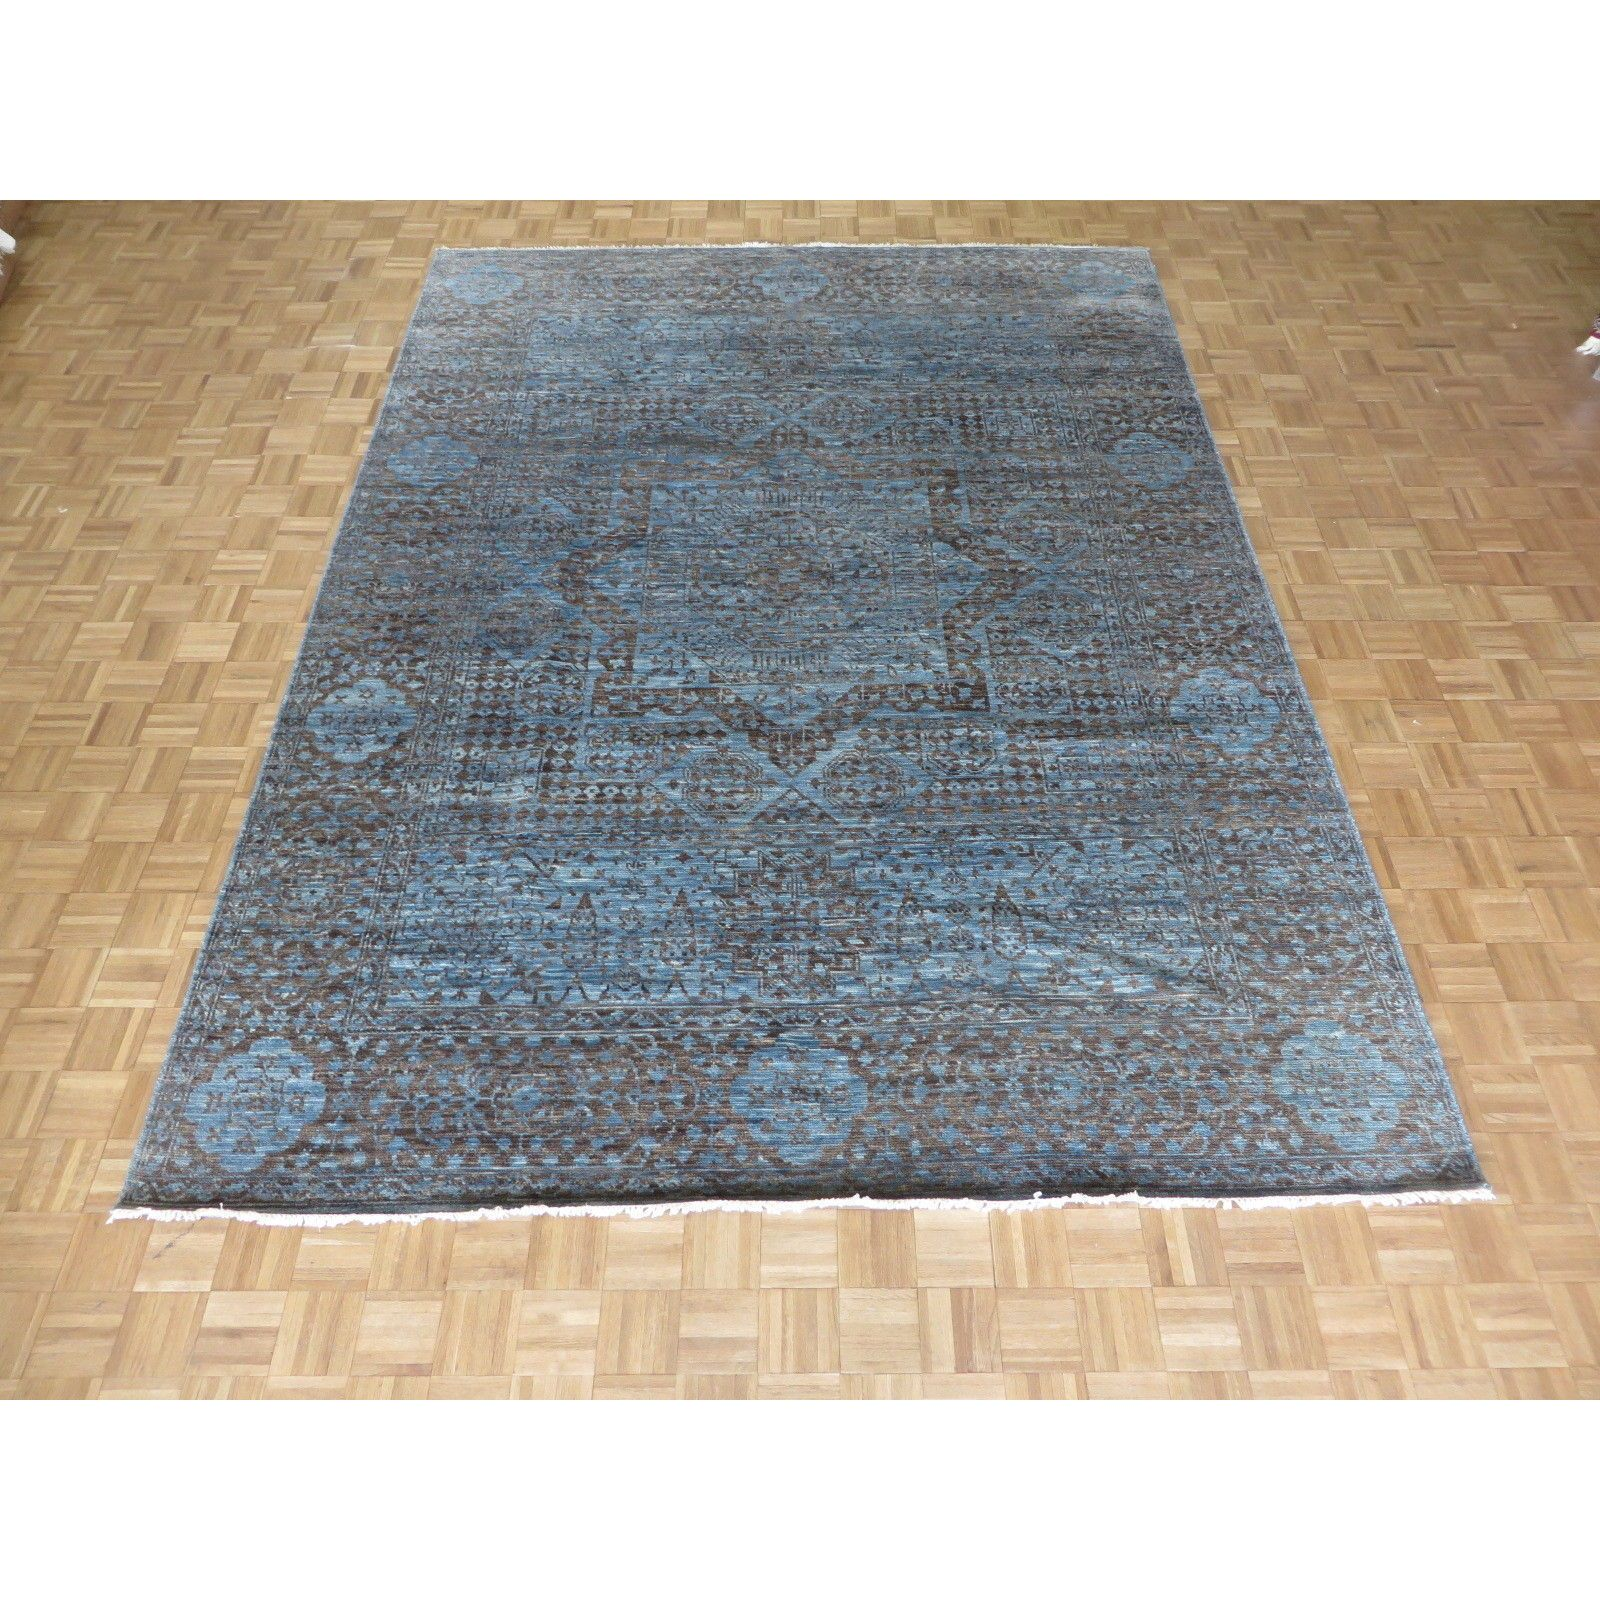 Hand Knotted Sky Blue Mamluk With Wool Oriental Rug 9 2 X 12 3 9 2 X 12 3 Sky Blue Blue Area Rugs Blue Area Rugs